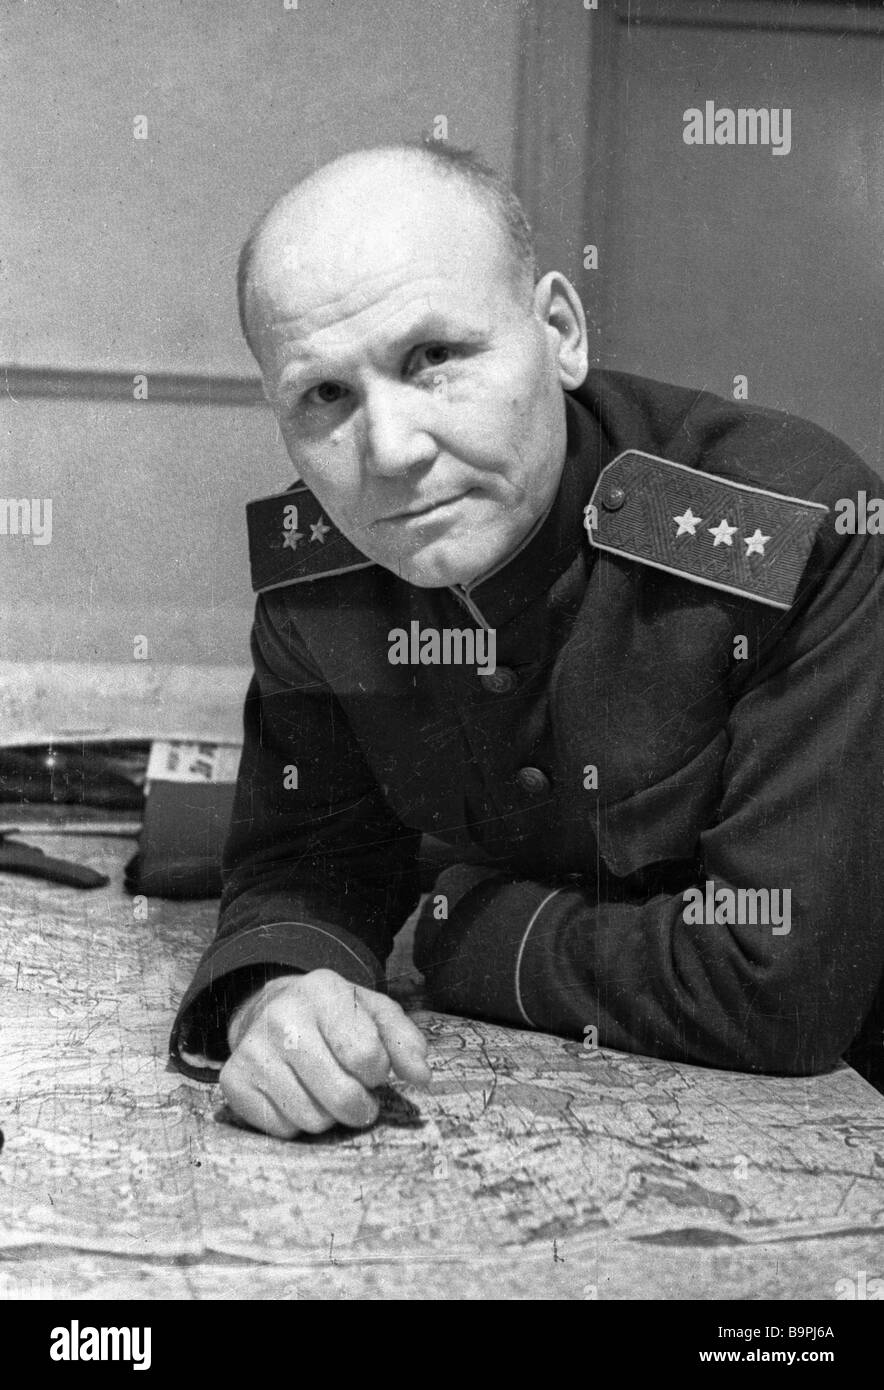 Colonel General I Konev sitting at table - Stock Image